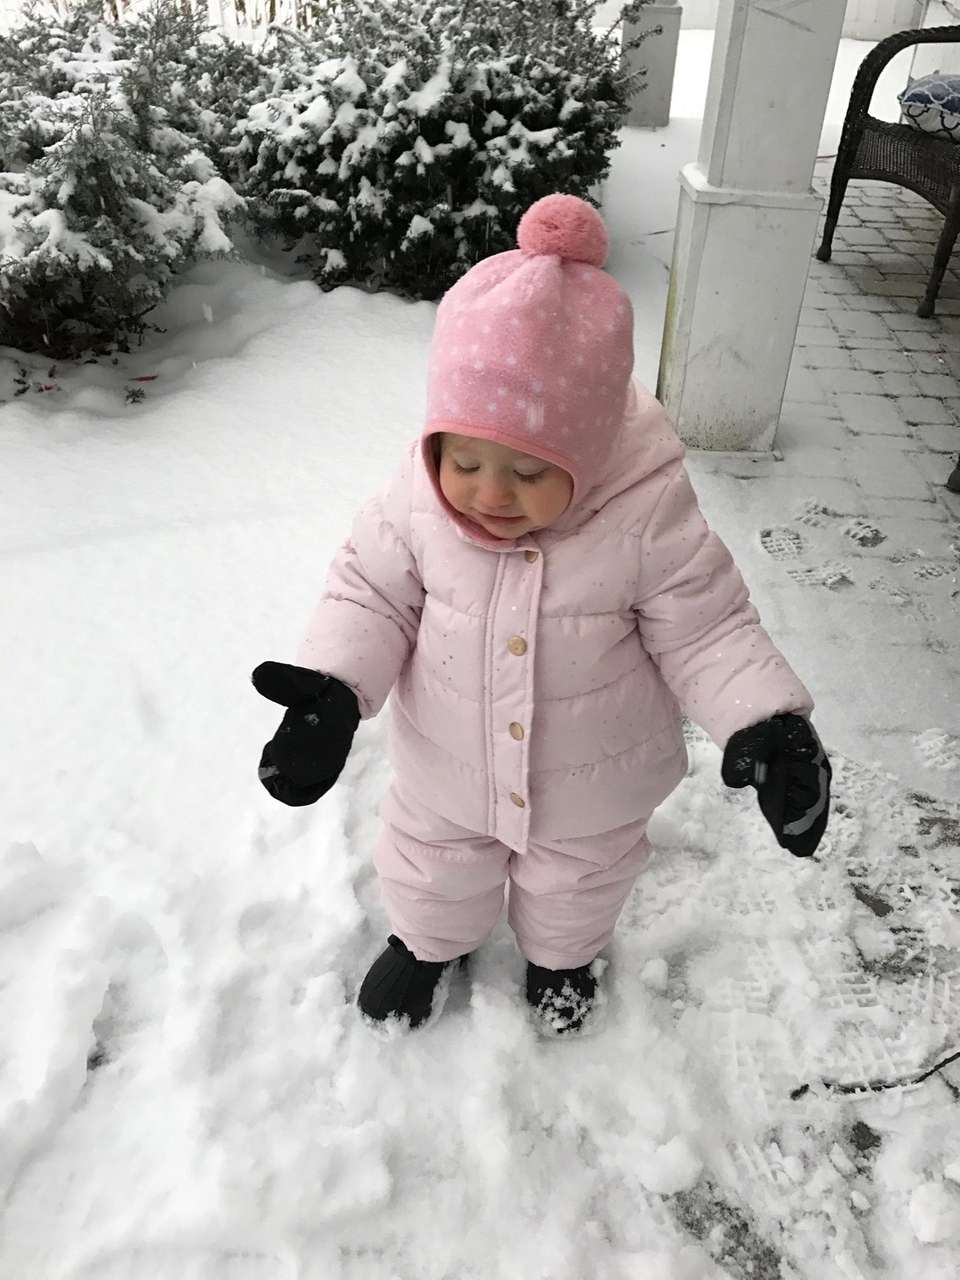 First time in the snow